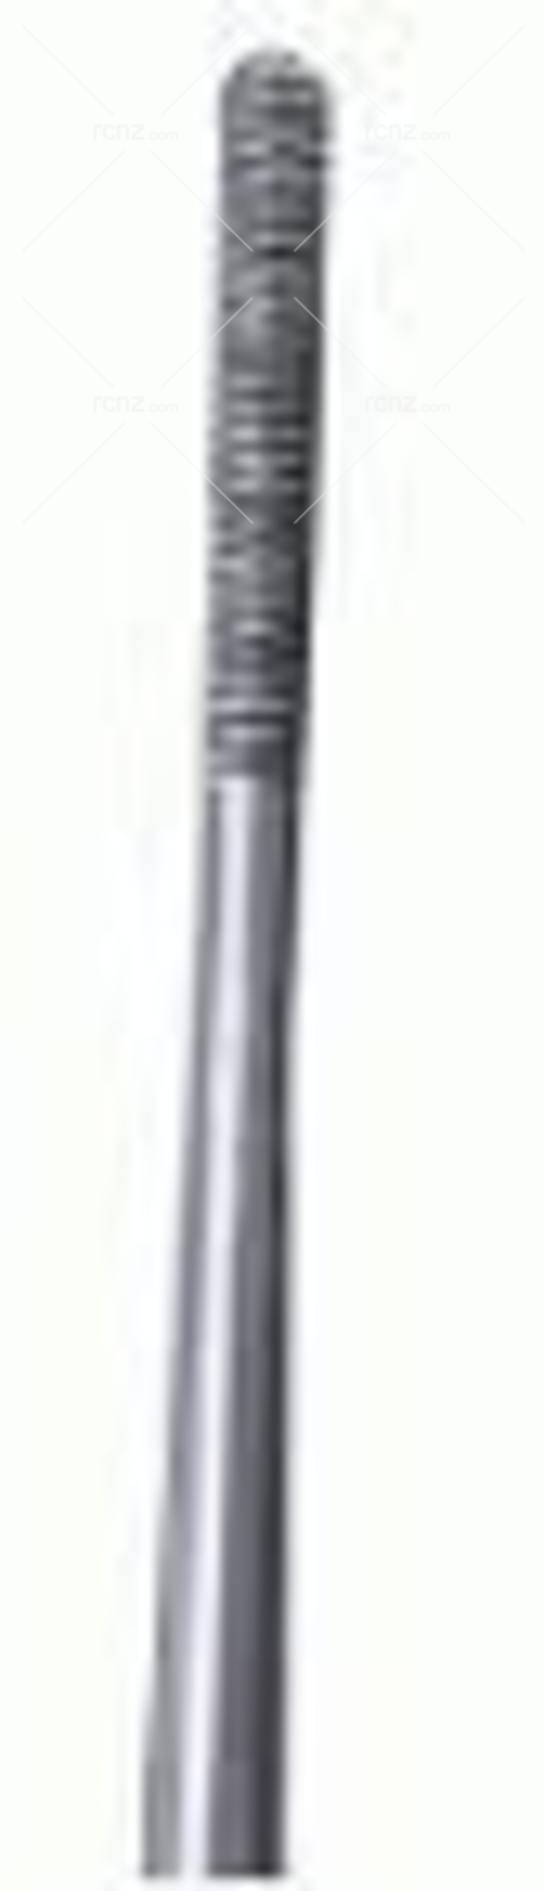 "Dubro - 12"" 4-40 Threaded Rods image"